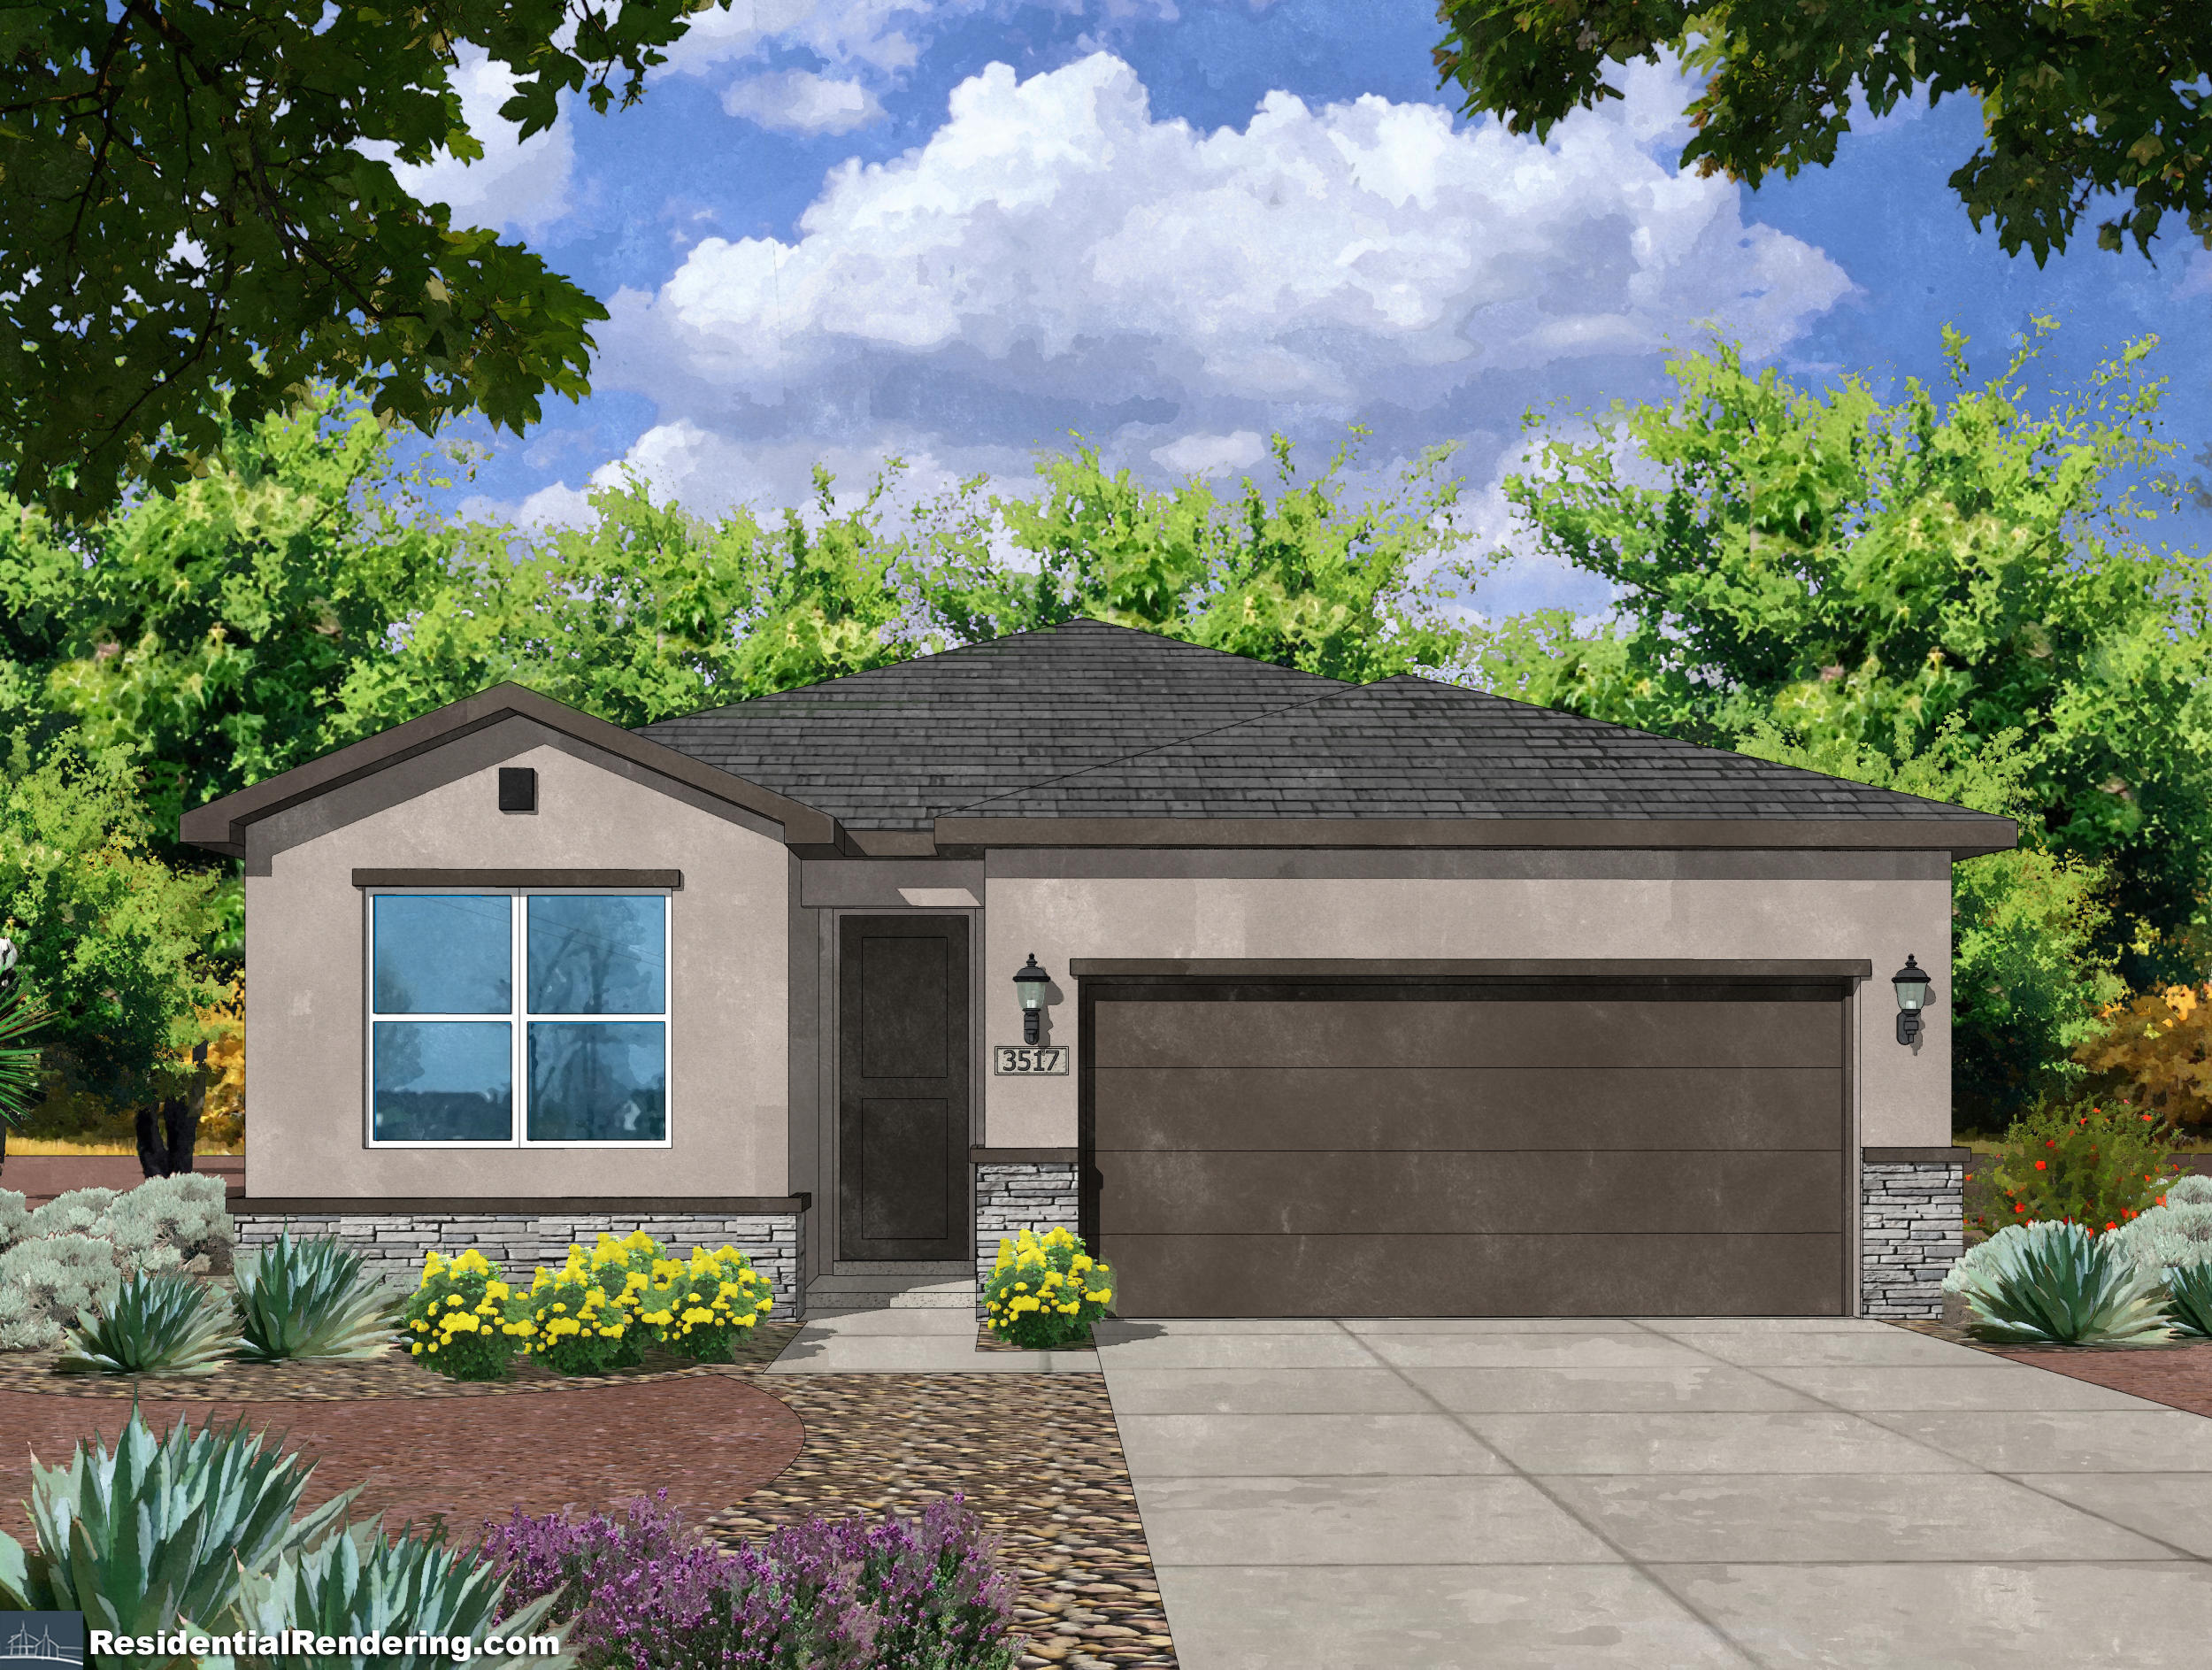 Welcome to The Villas by Amreston Homes! A brand new community in the heart of Enchanted Hills! The bright and open kitchen features solid granite countertops with tile backsplash, kitchen island, staggered maple cabinets w/ crown molding.  Maytag stainless steel appliances including gas range, energy star dishwasher. The bathrooms are outfitted with designer tile shower surrounds, double granite vanity sinks, and tile backsplash. Energy-efficient features include tankless water heater, Carrier 16.0 SEER Refrigerated AC, Low E vinyl windows, 100% Energy Star LED bulbs. Additional upgrades include designer concrete tile roofs, raised panel interior doors, satin nickel lighting package, Decora electrical switches. Front yard landscaping included!